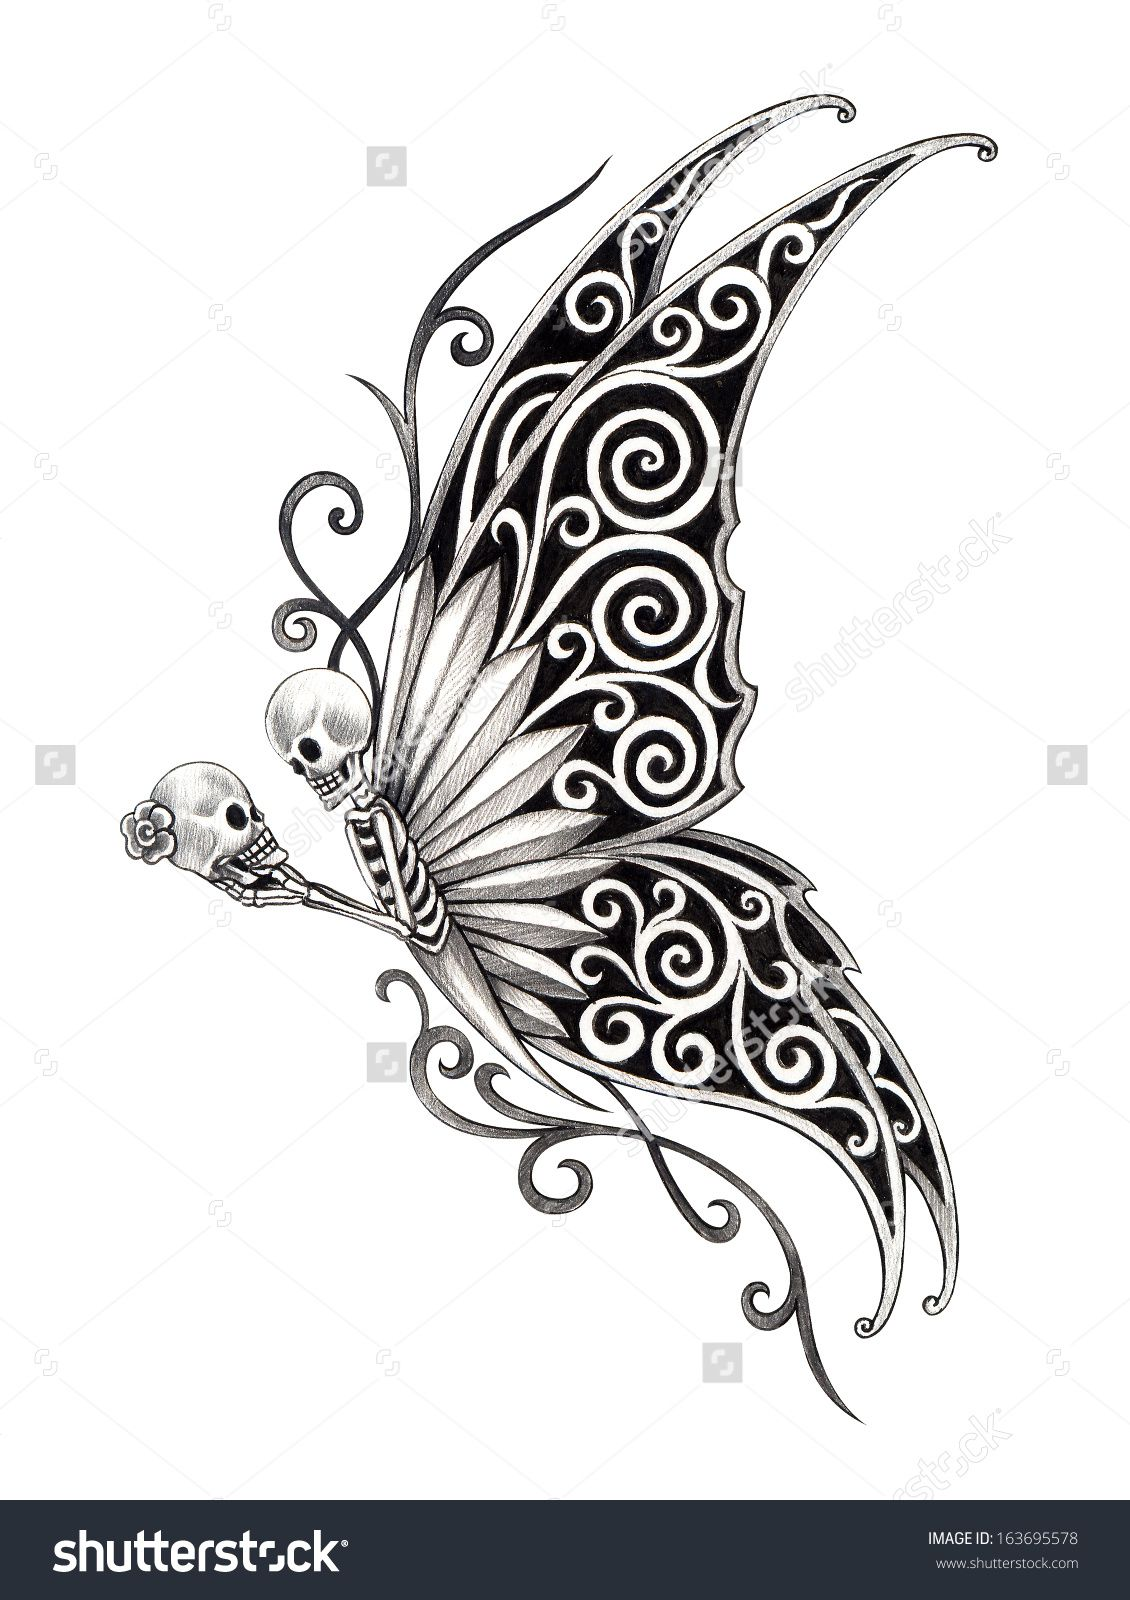 Image result for skull butterfly Skull butterfly tattoo